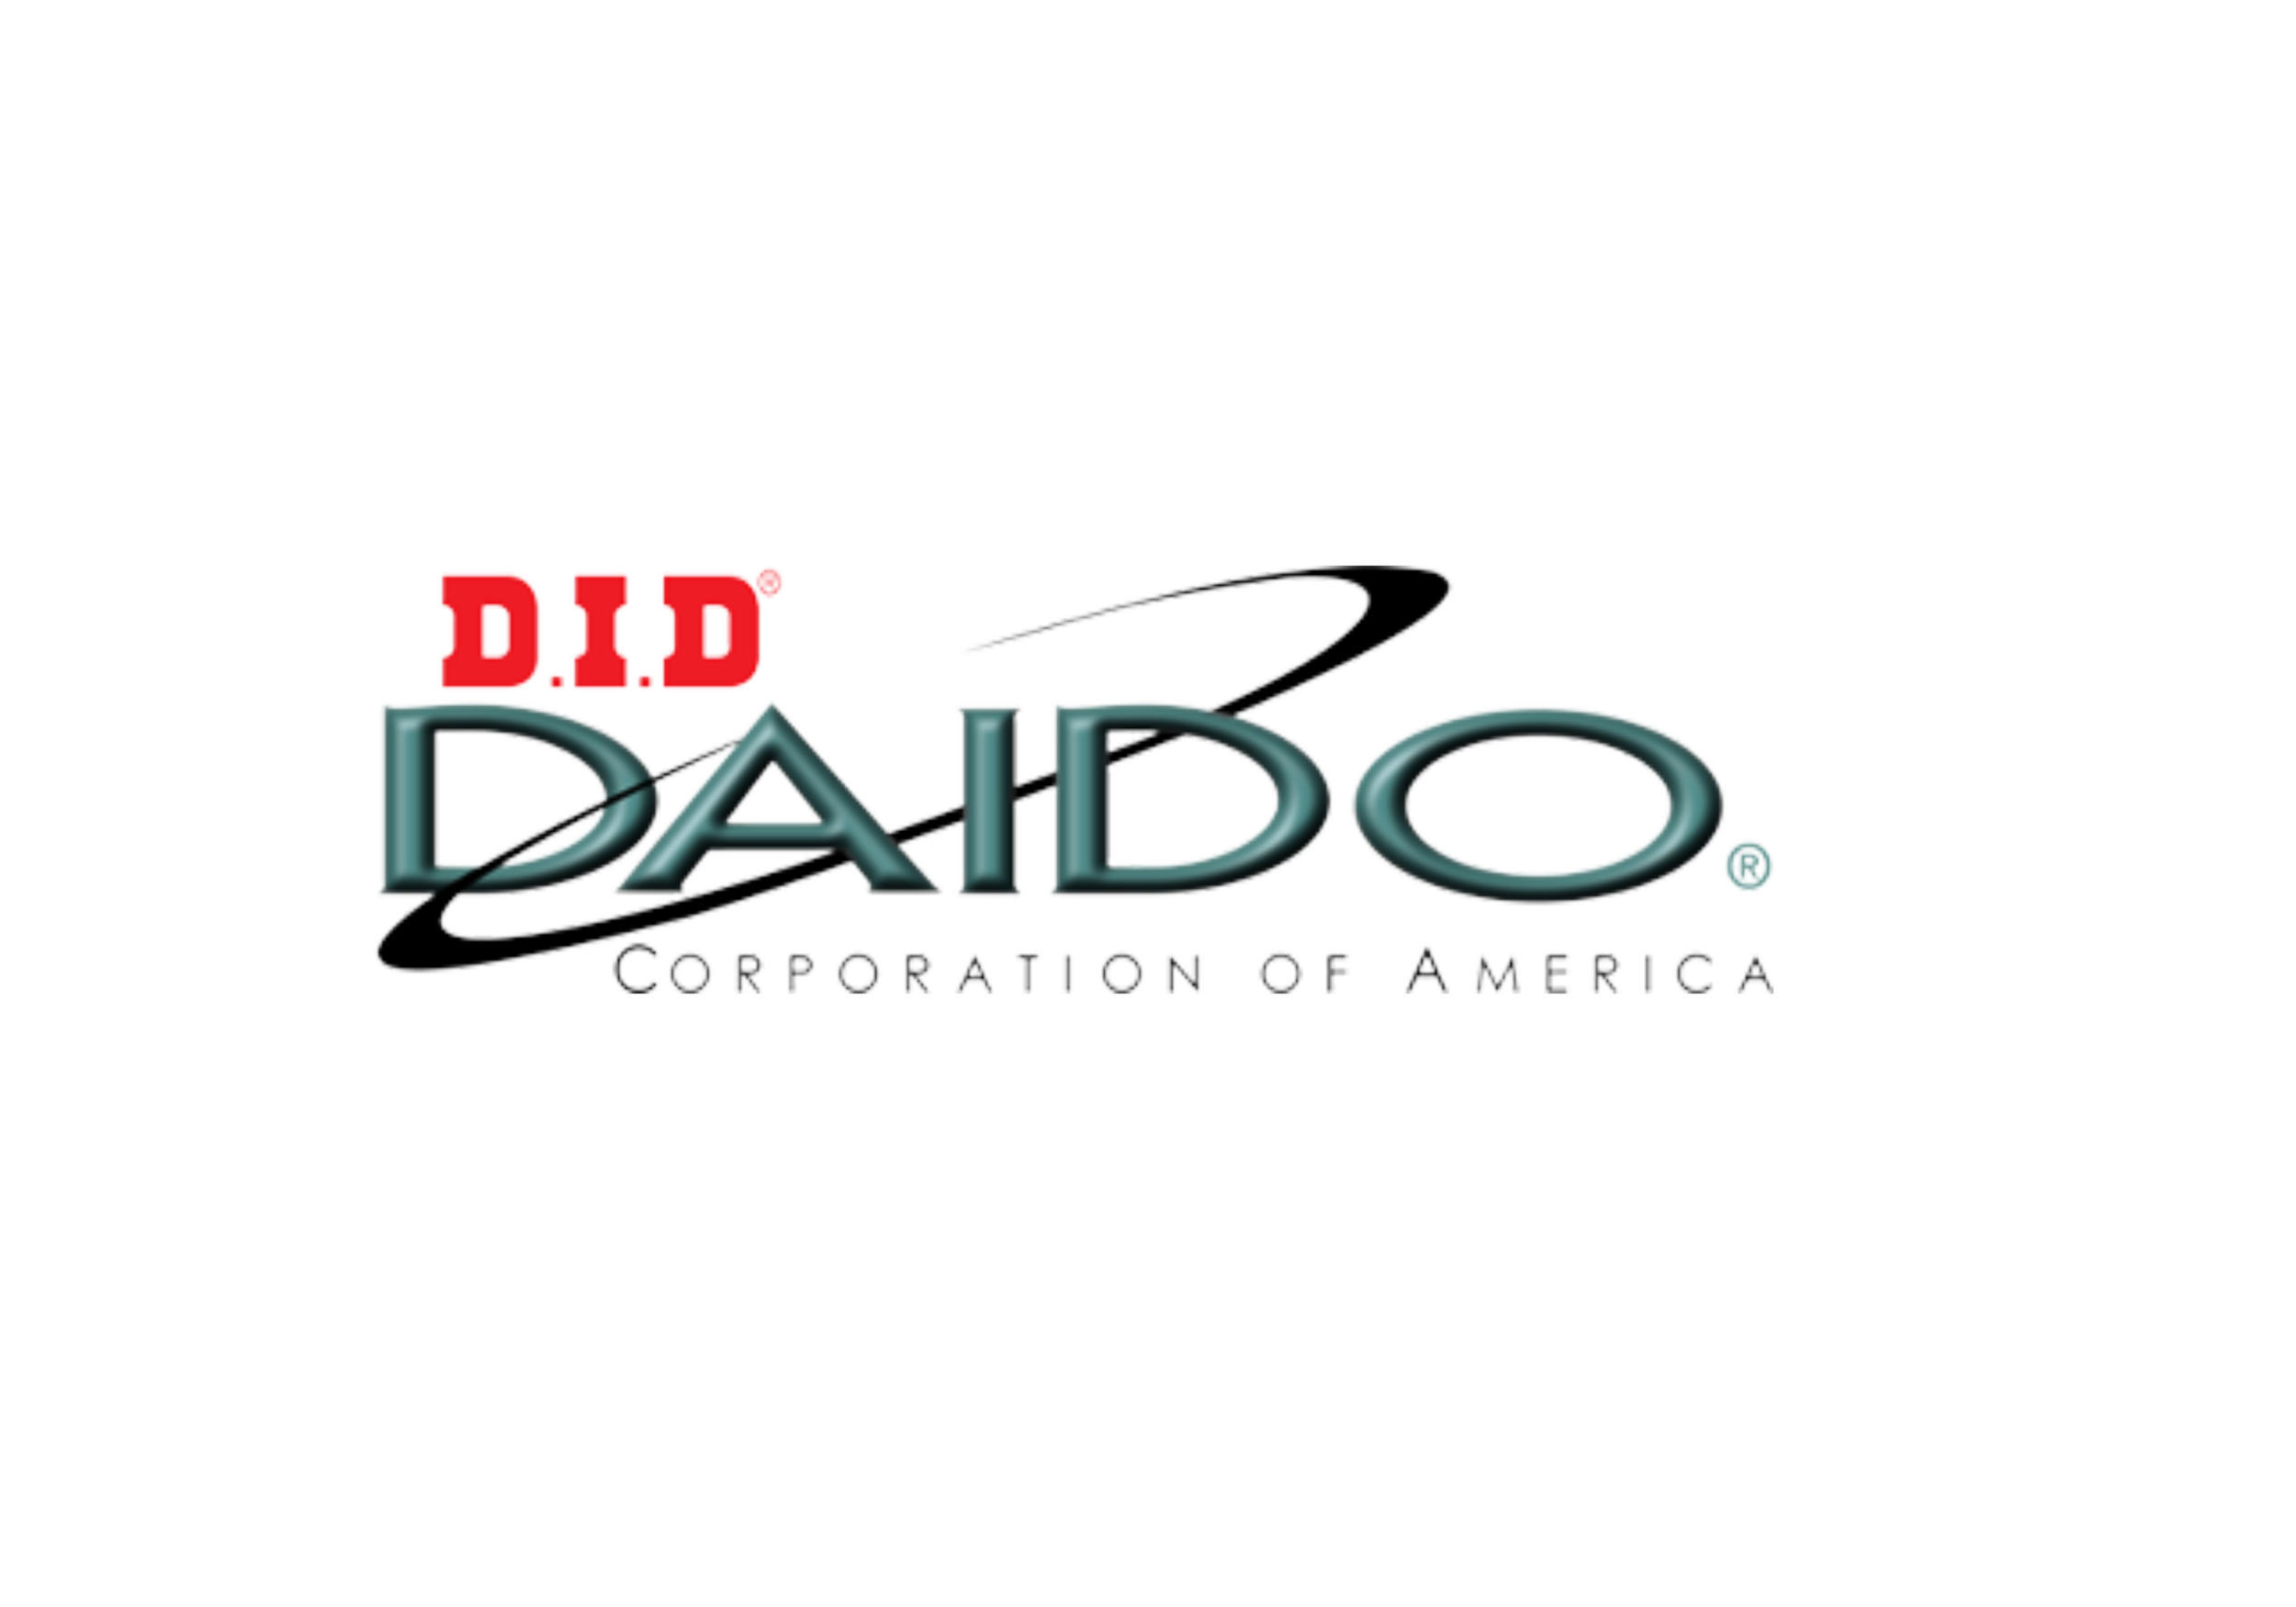 DAIDO - Our premium Chain Manufacturer, Daido provides great quality chain at a competitive price.- Roller Chain: D.I.D, Tru-Pitch, attachment chin, and top roller chain.- Reasons to choose Daido: Daido is among the best of the best when it comes to chain manufacturing. At Dixie Industrial, we keep a large selection of D.I.D chain and connecting/offset links in stock.